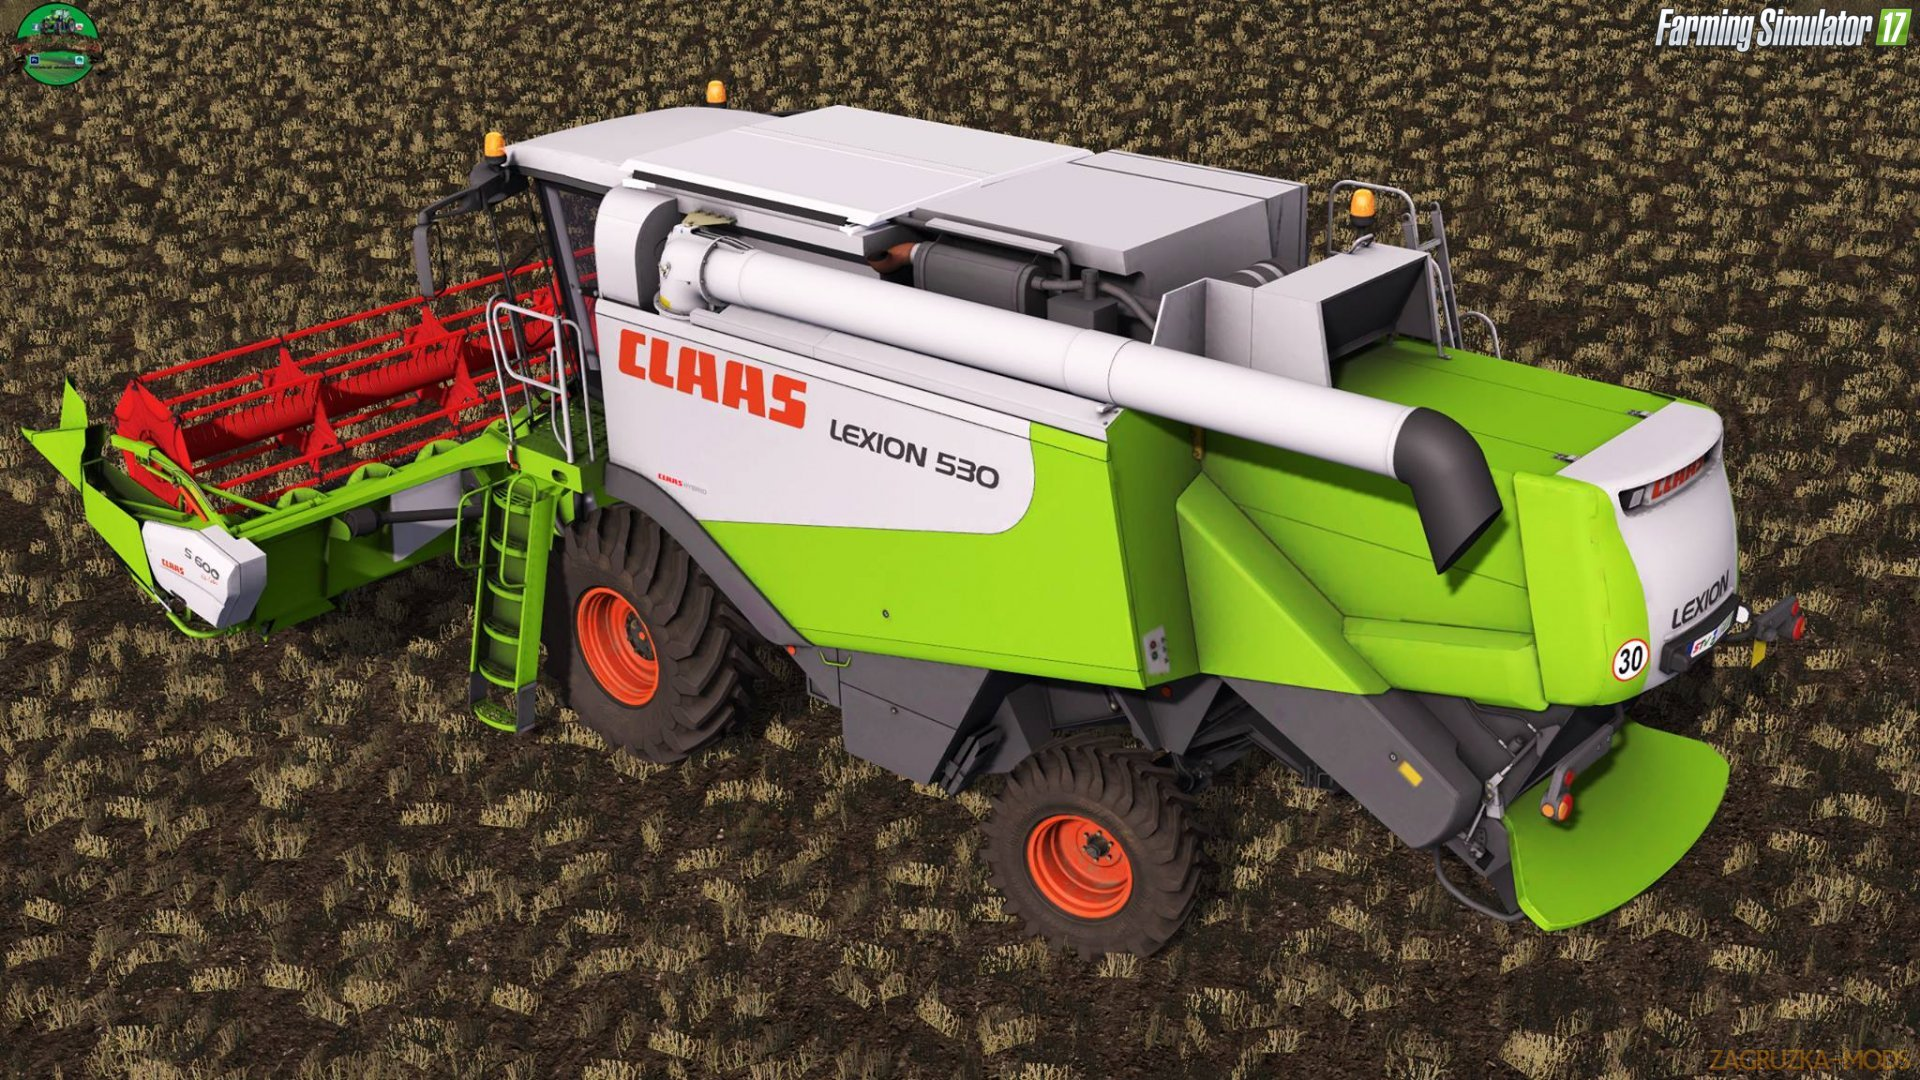 Claas Lexion 530 v1.0 for FS 17